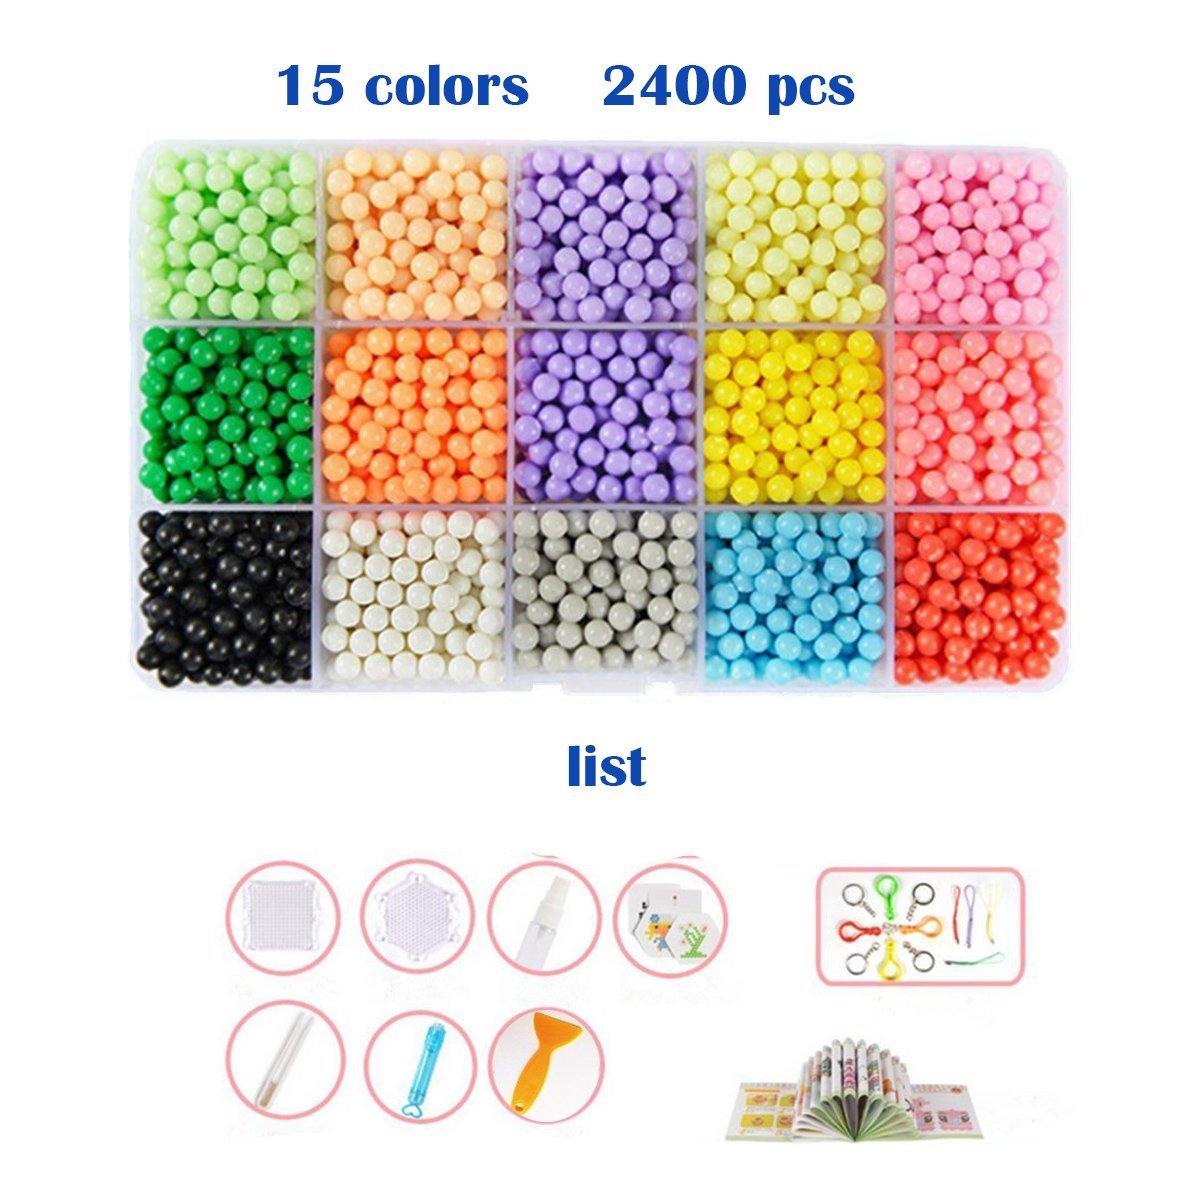 Aqua water beads Beginners Studio perler fusion Craft beads Art Crafts toys for kids non toxic with bead palette, layout table, bead pen, bead peeler, sprayer, template sheets -15 colors(2400pcs) by QIAONIUNIU (Image #4)